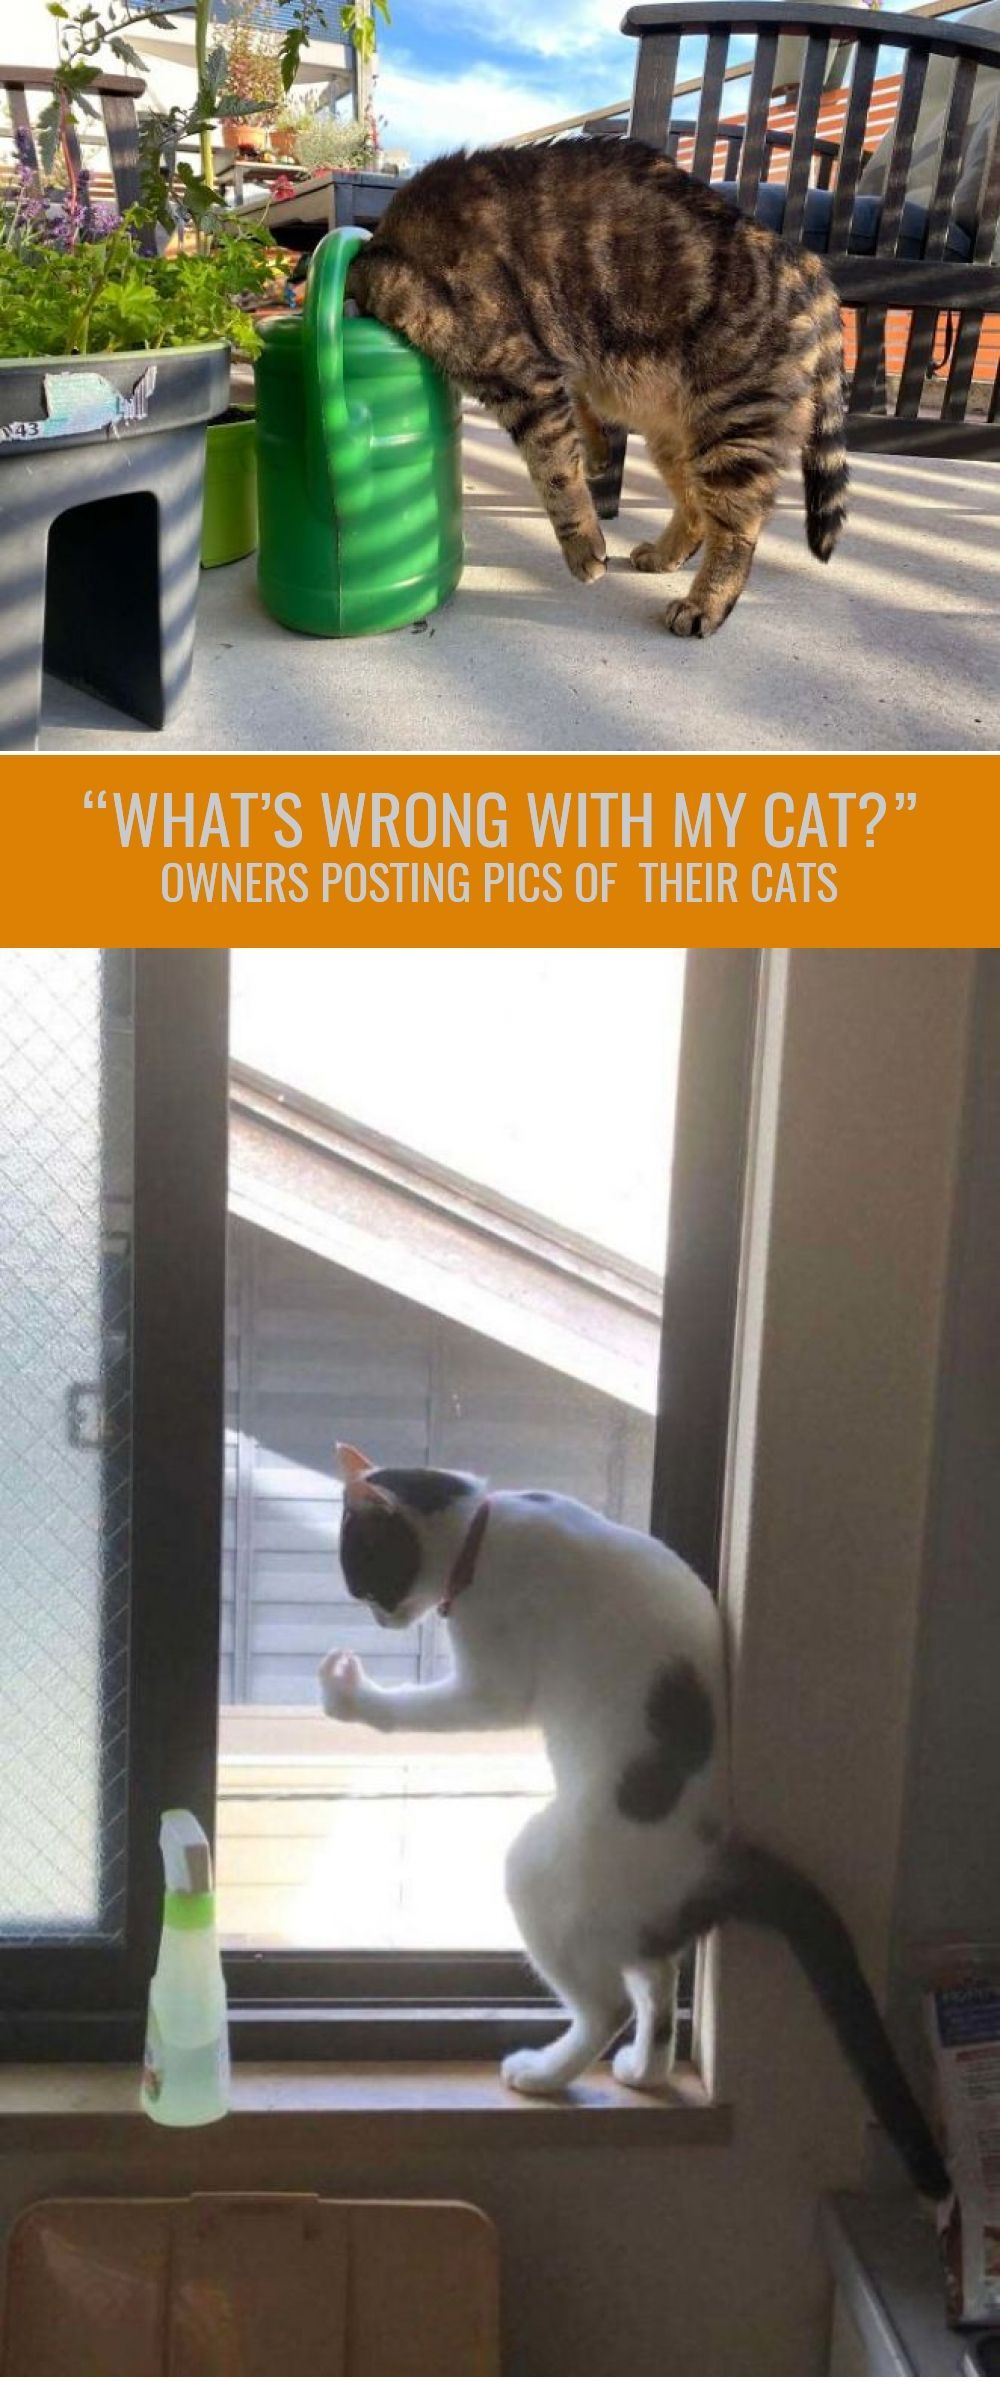 What S Wrong With My Cat Online Group Has Owners Posting Pics Of Their Malfunctioning Cats And Here Are 30 Of The Funniest Ones Cats In 2020 Cats Cat Online Pics